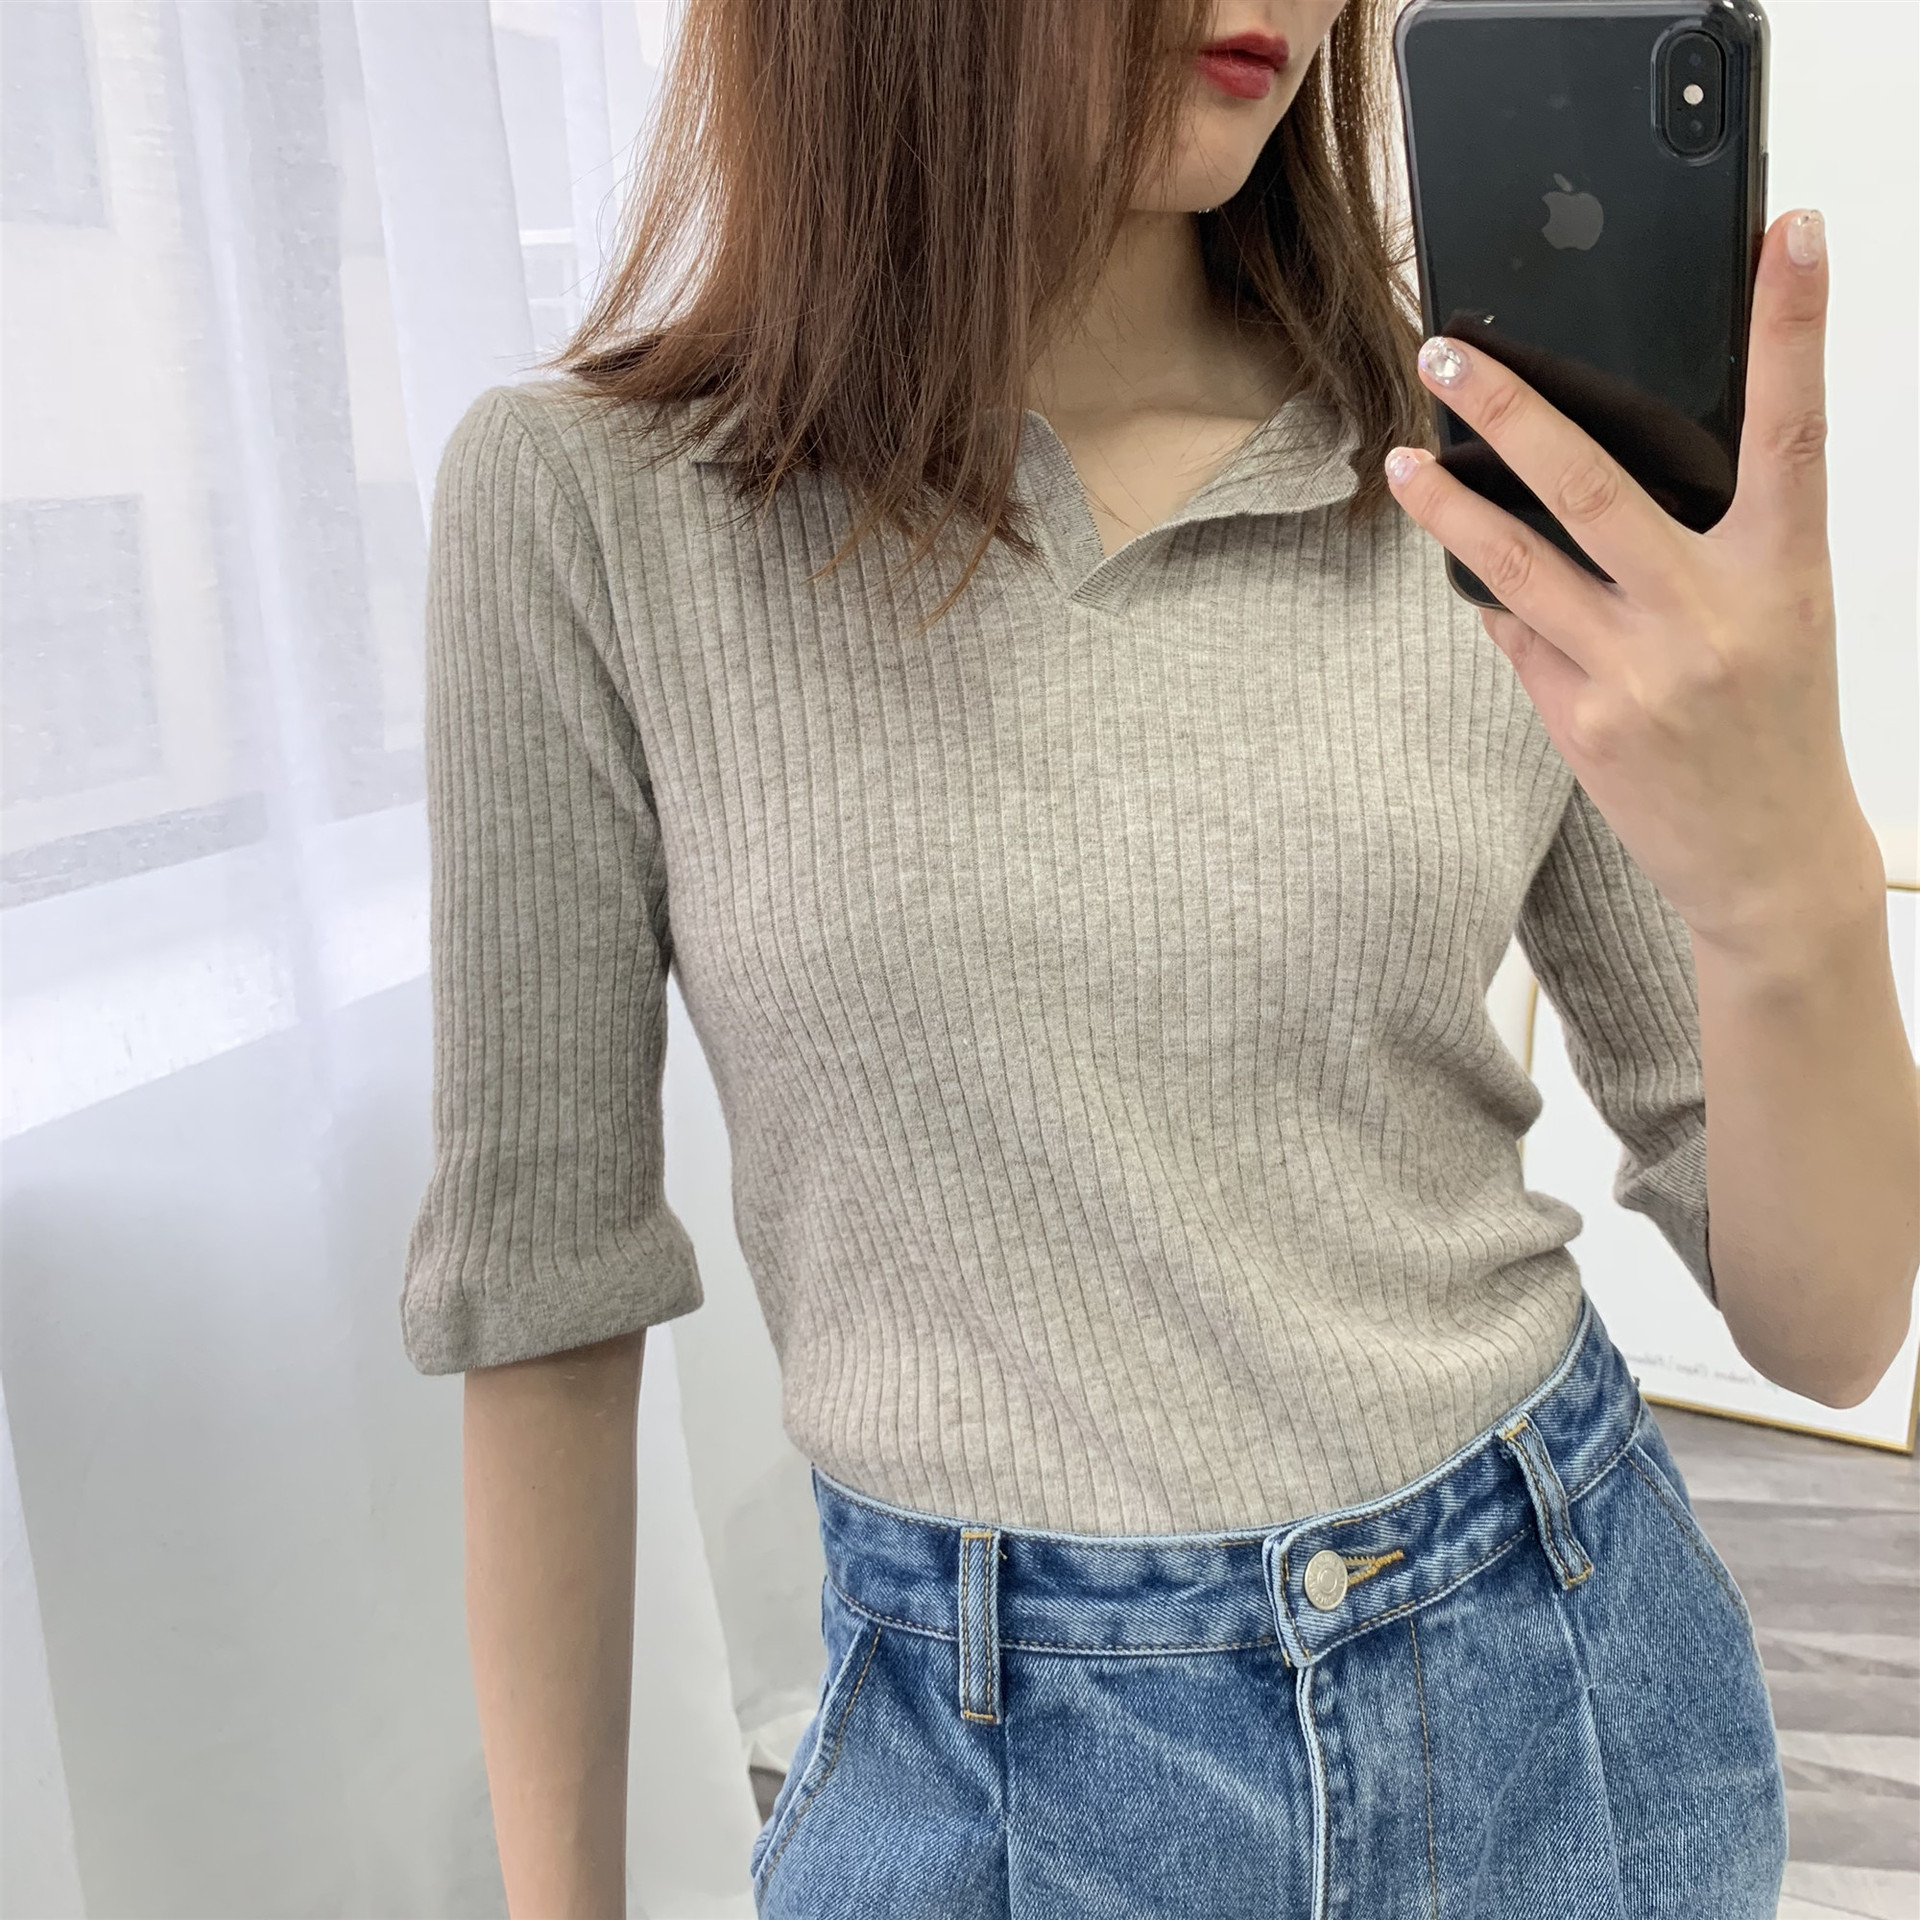 2019 New Fashion Women T Shirt Solid Half sleeve Slim Knitted Top Women spring summer Casual Female T-shirt High Quality